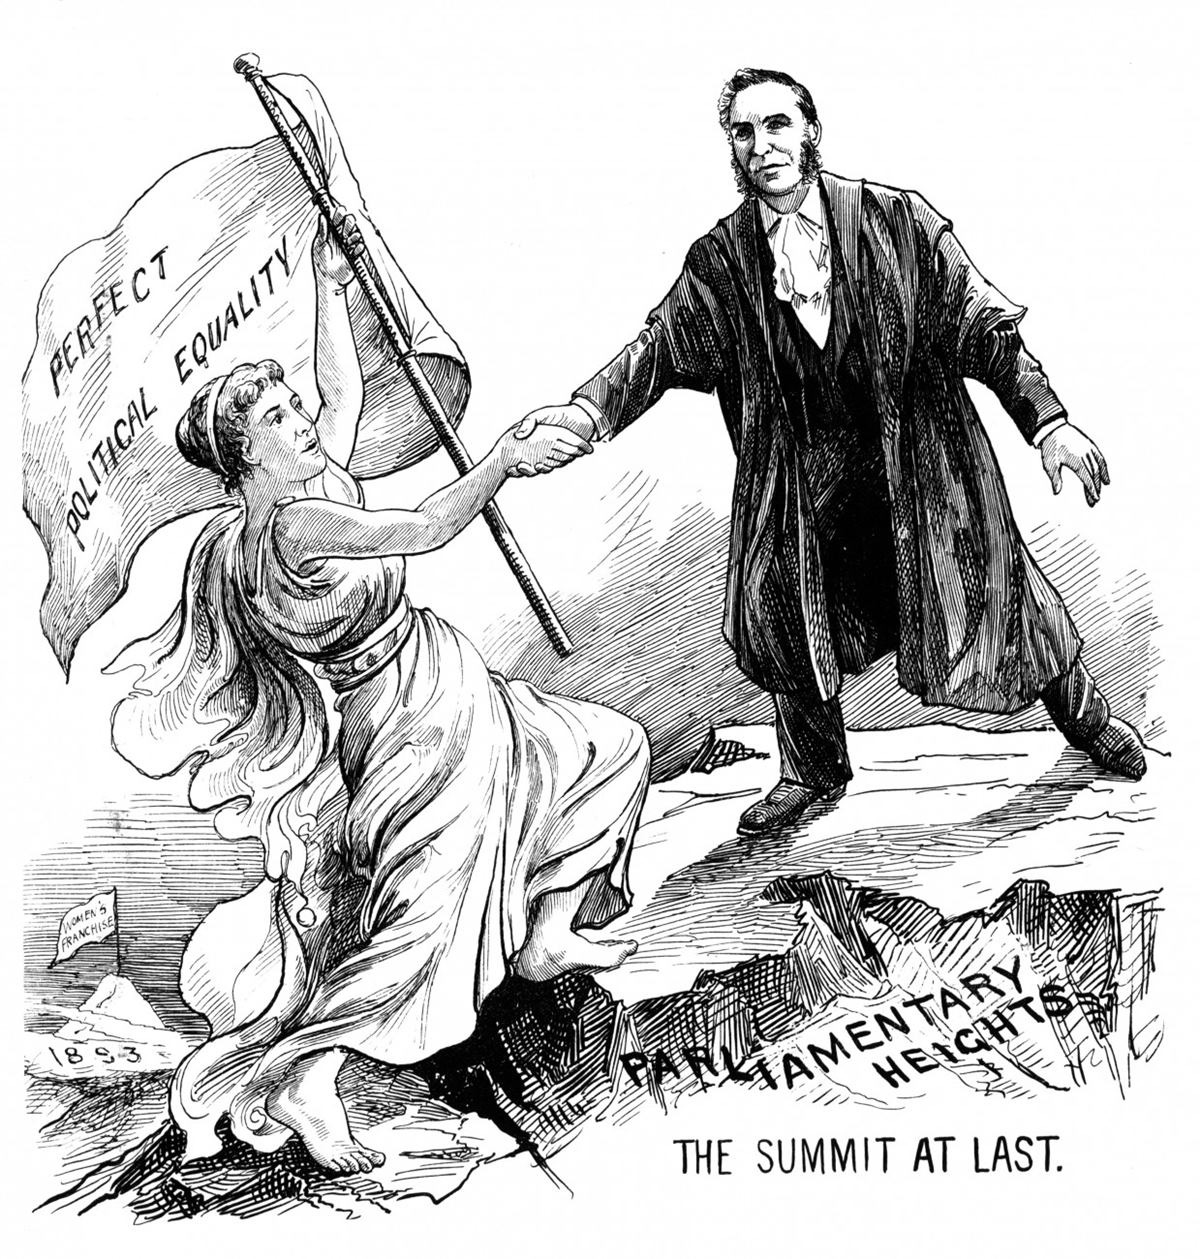 Women gained the vote in New Zealand in 1893, the summit at last.